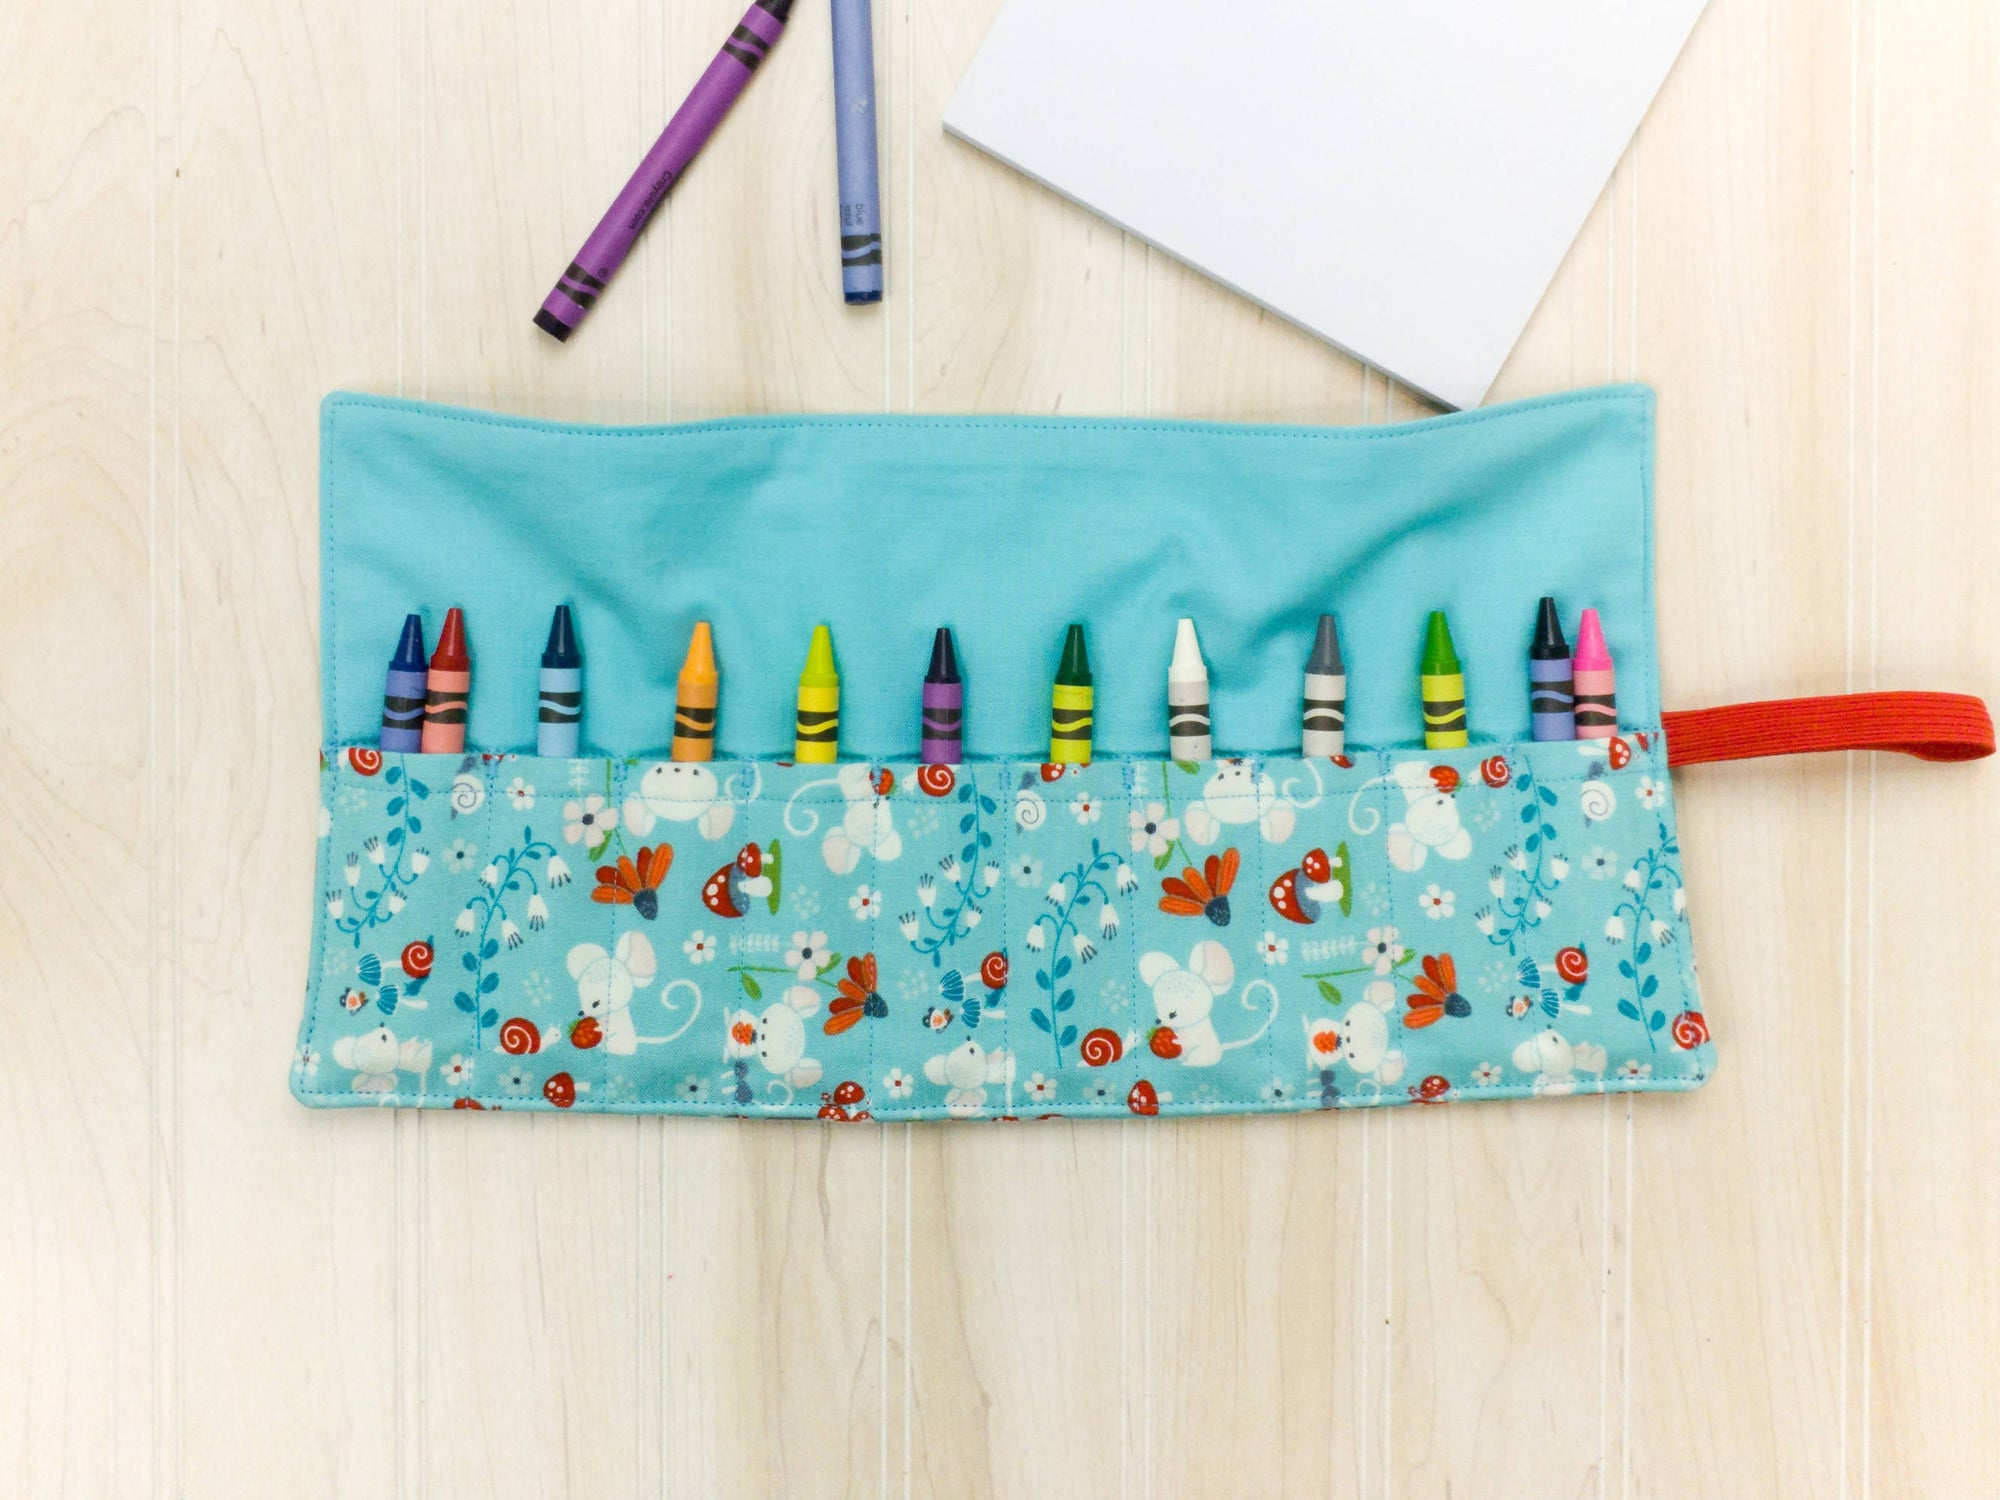 Crayon & Marker Roll Up - Turquoise Mice and Flowers